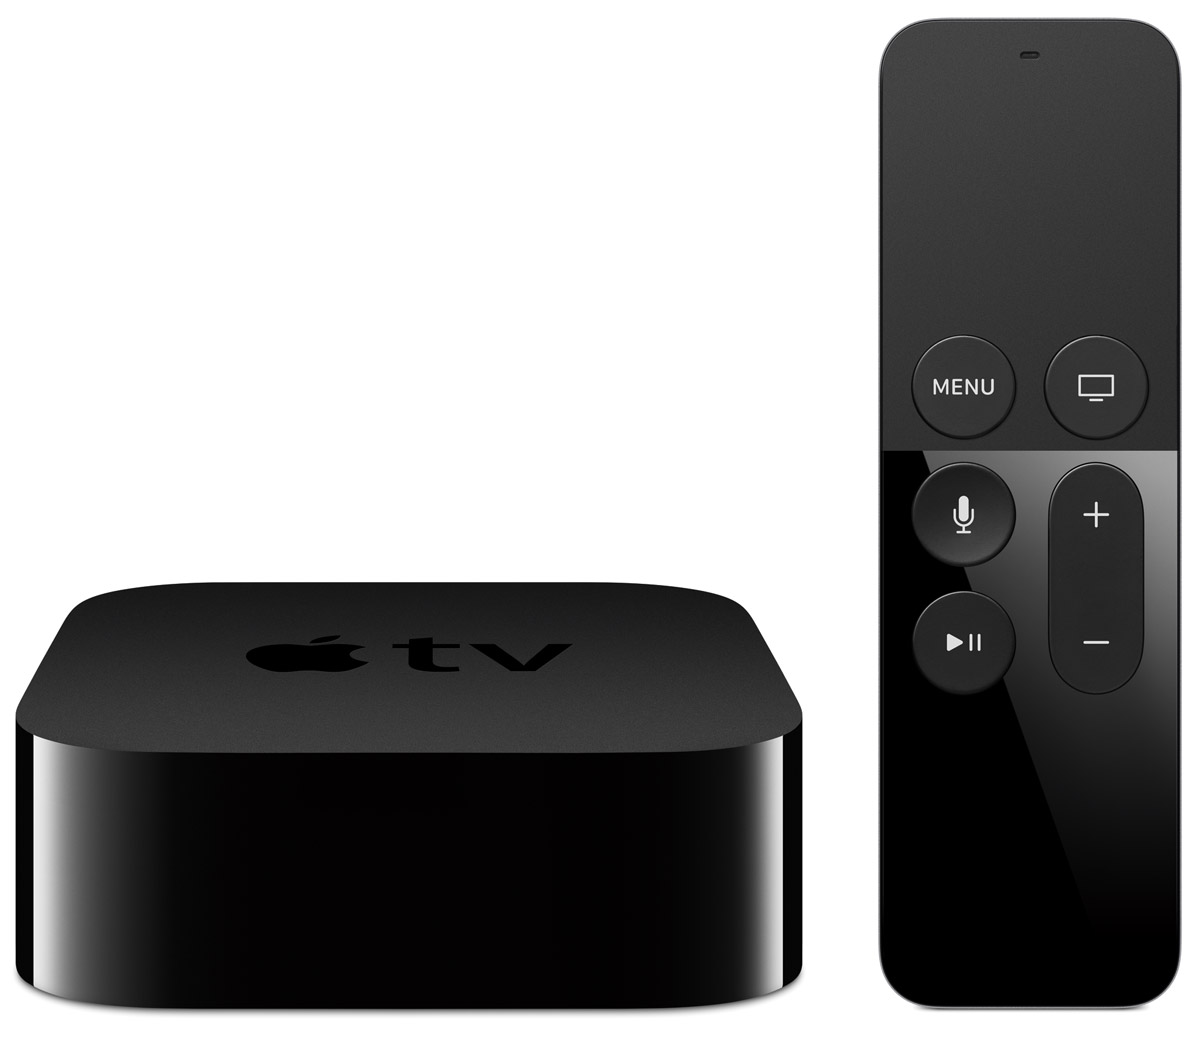 The redesigned Apple TV is coming this month